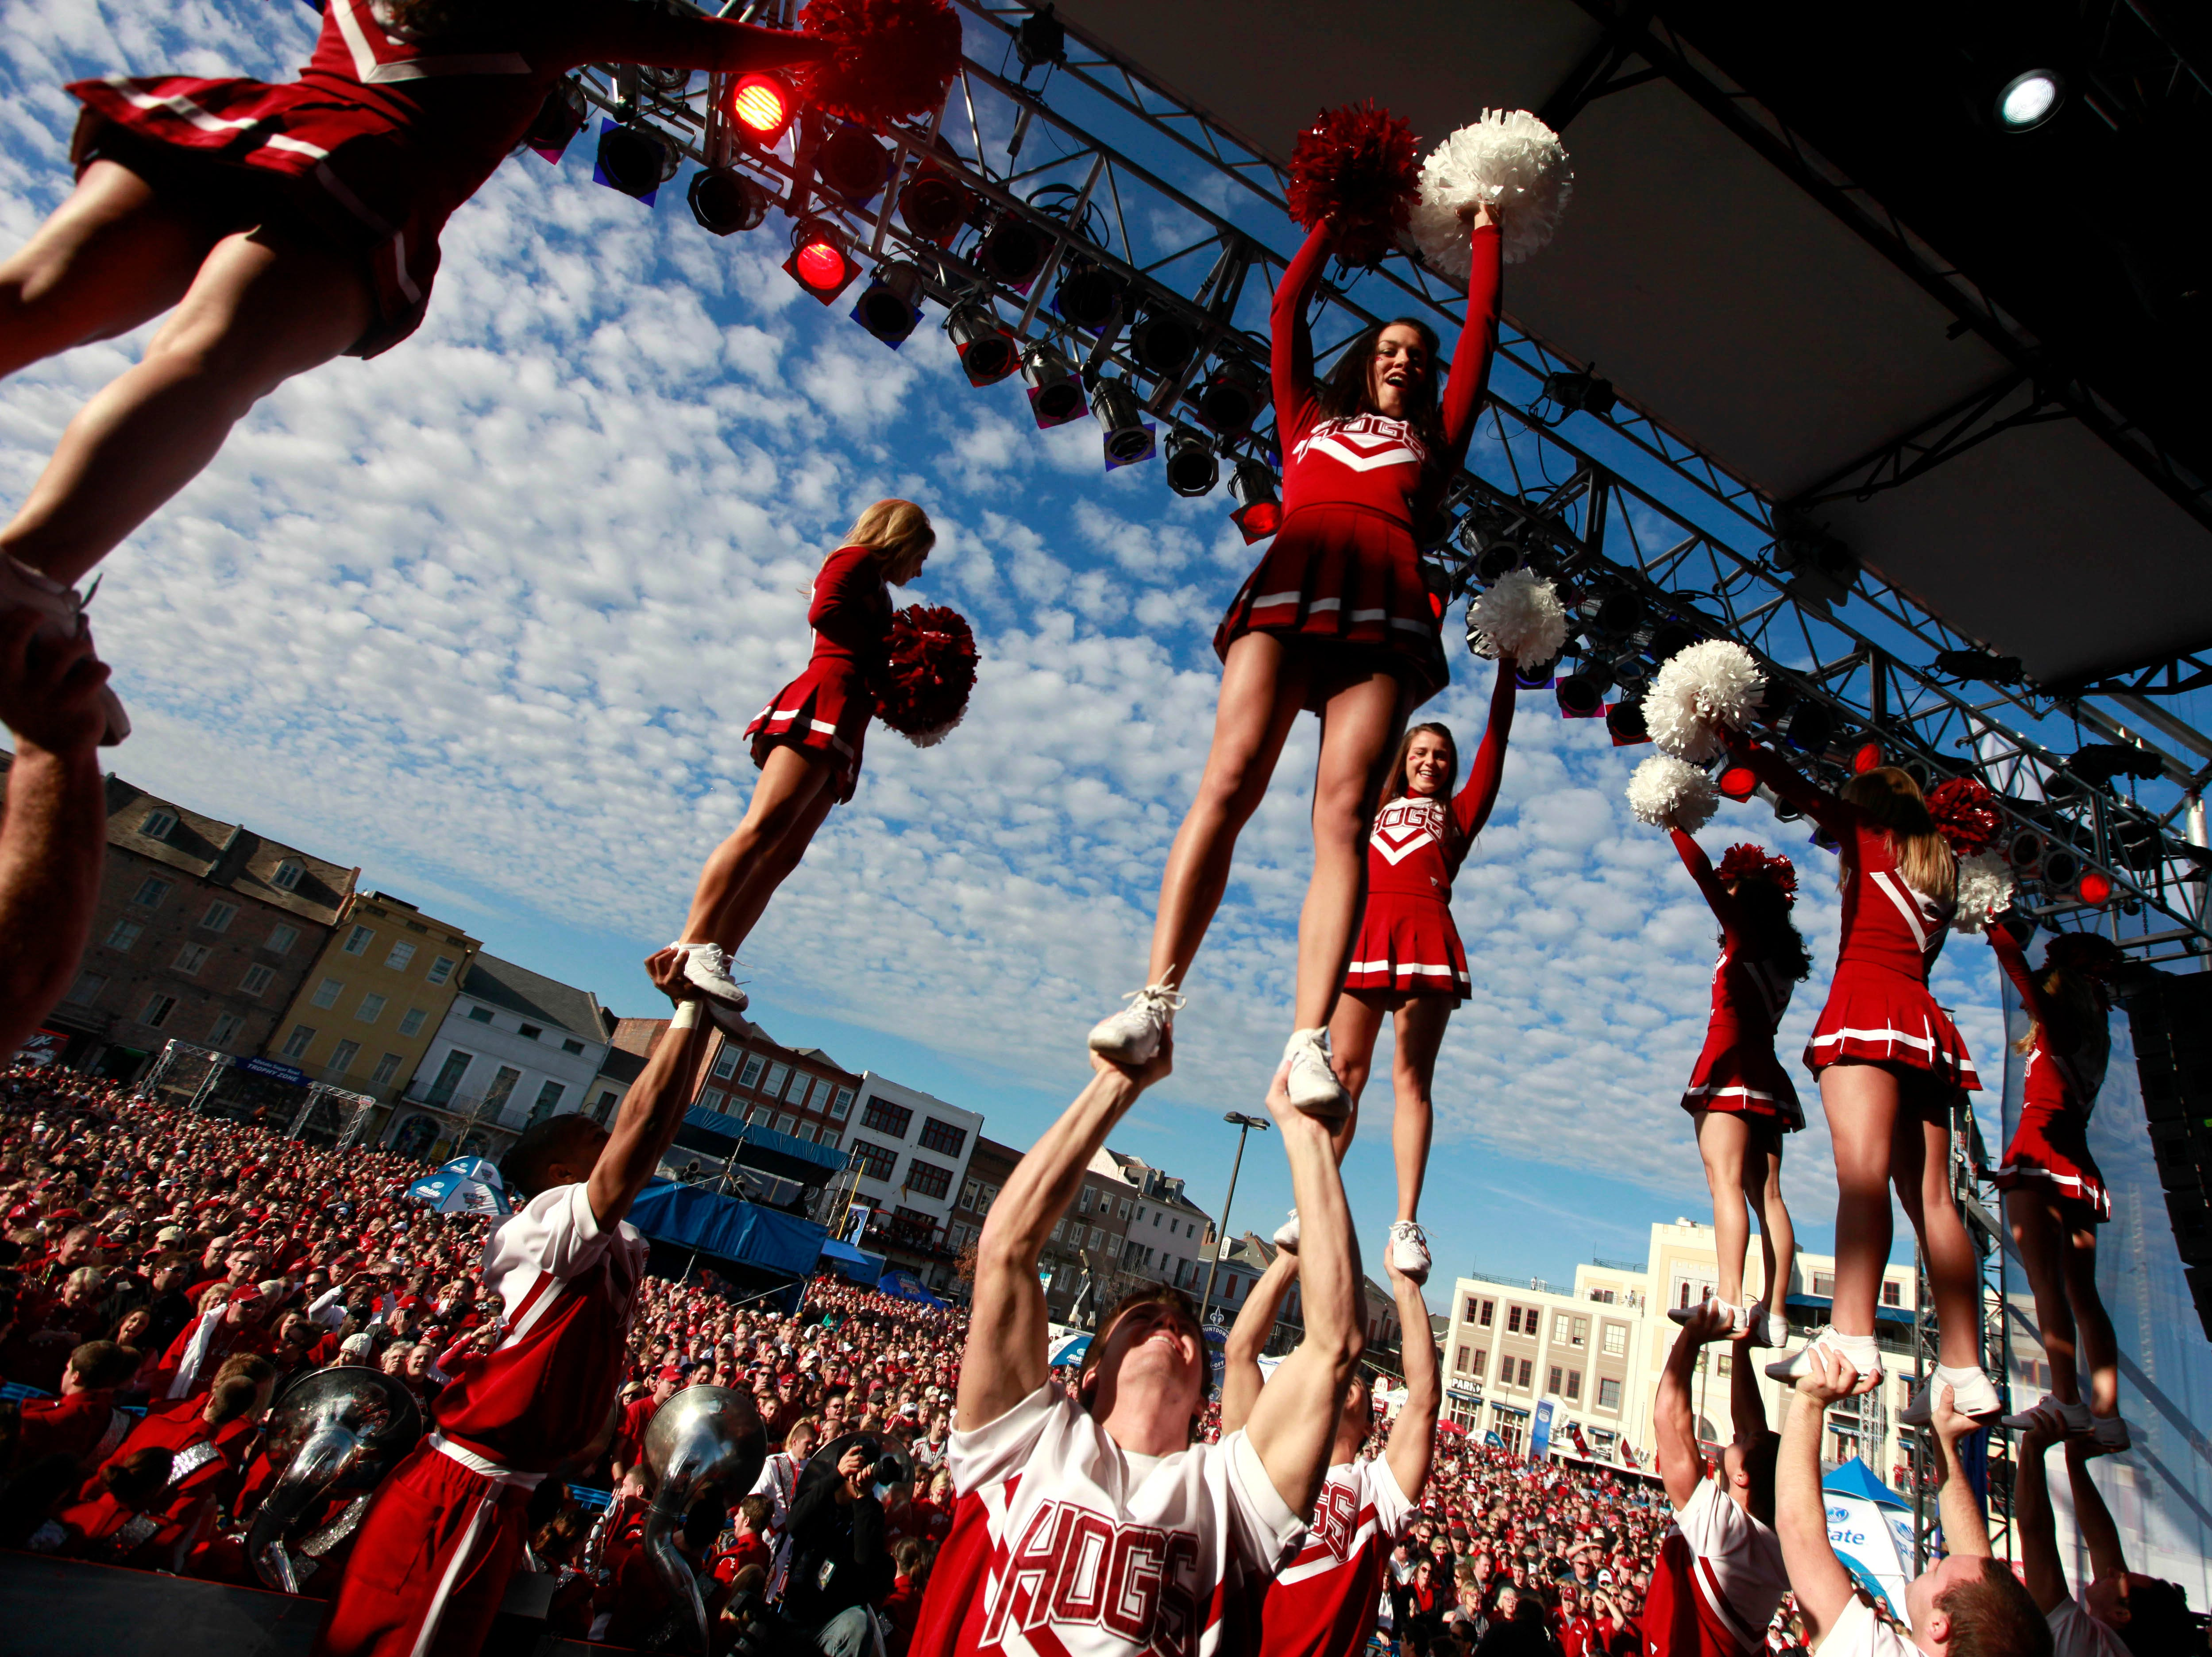 University of Arkansas cheerleaders perform for fans at a pep rally for the upcoming NCAA football BCS Sugar Bowl game against Ohio State in New Orleans, Monday, Jan. 3, 2011. (AP Photo/Gerald Herbert)